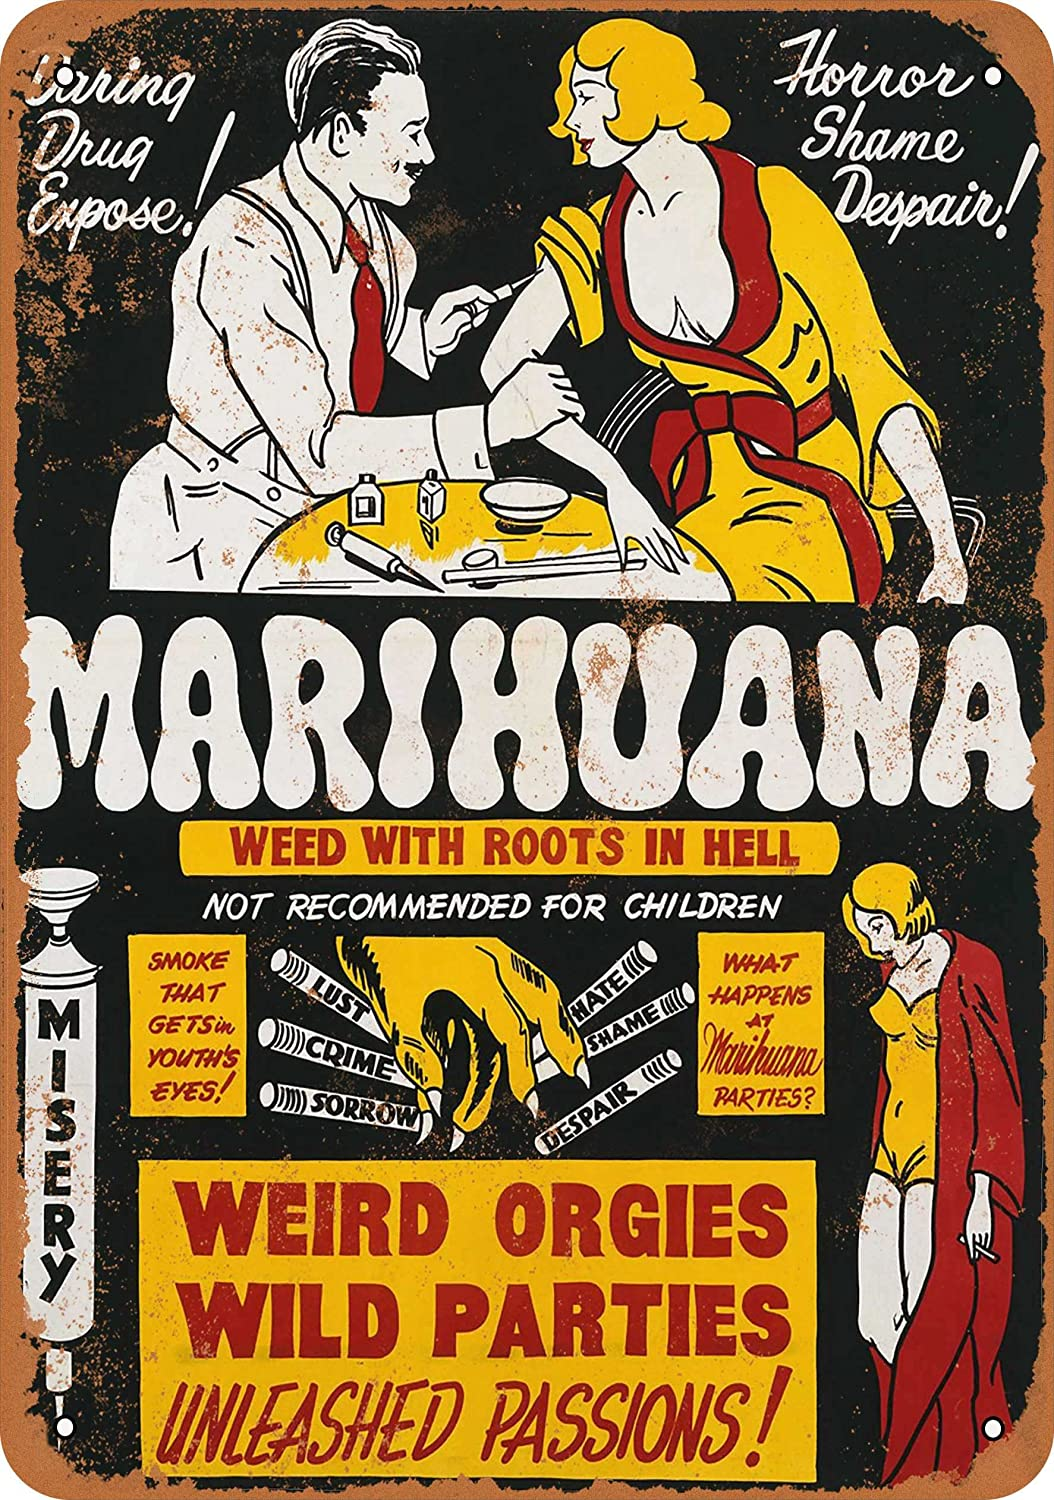 Wall-Color 7 x 10 Metal Sign - 1936 Marijuana Weed Roots in Hell - Vintage Look Reproduction